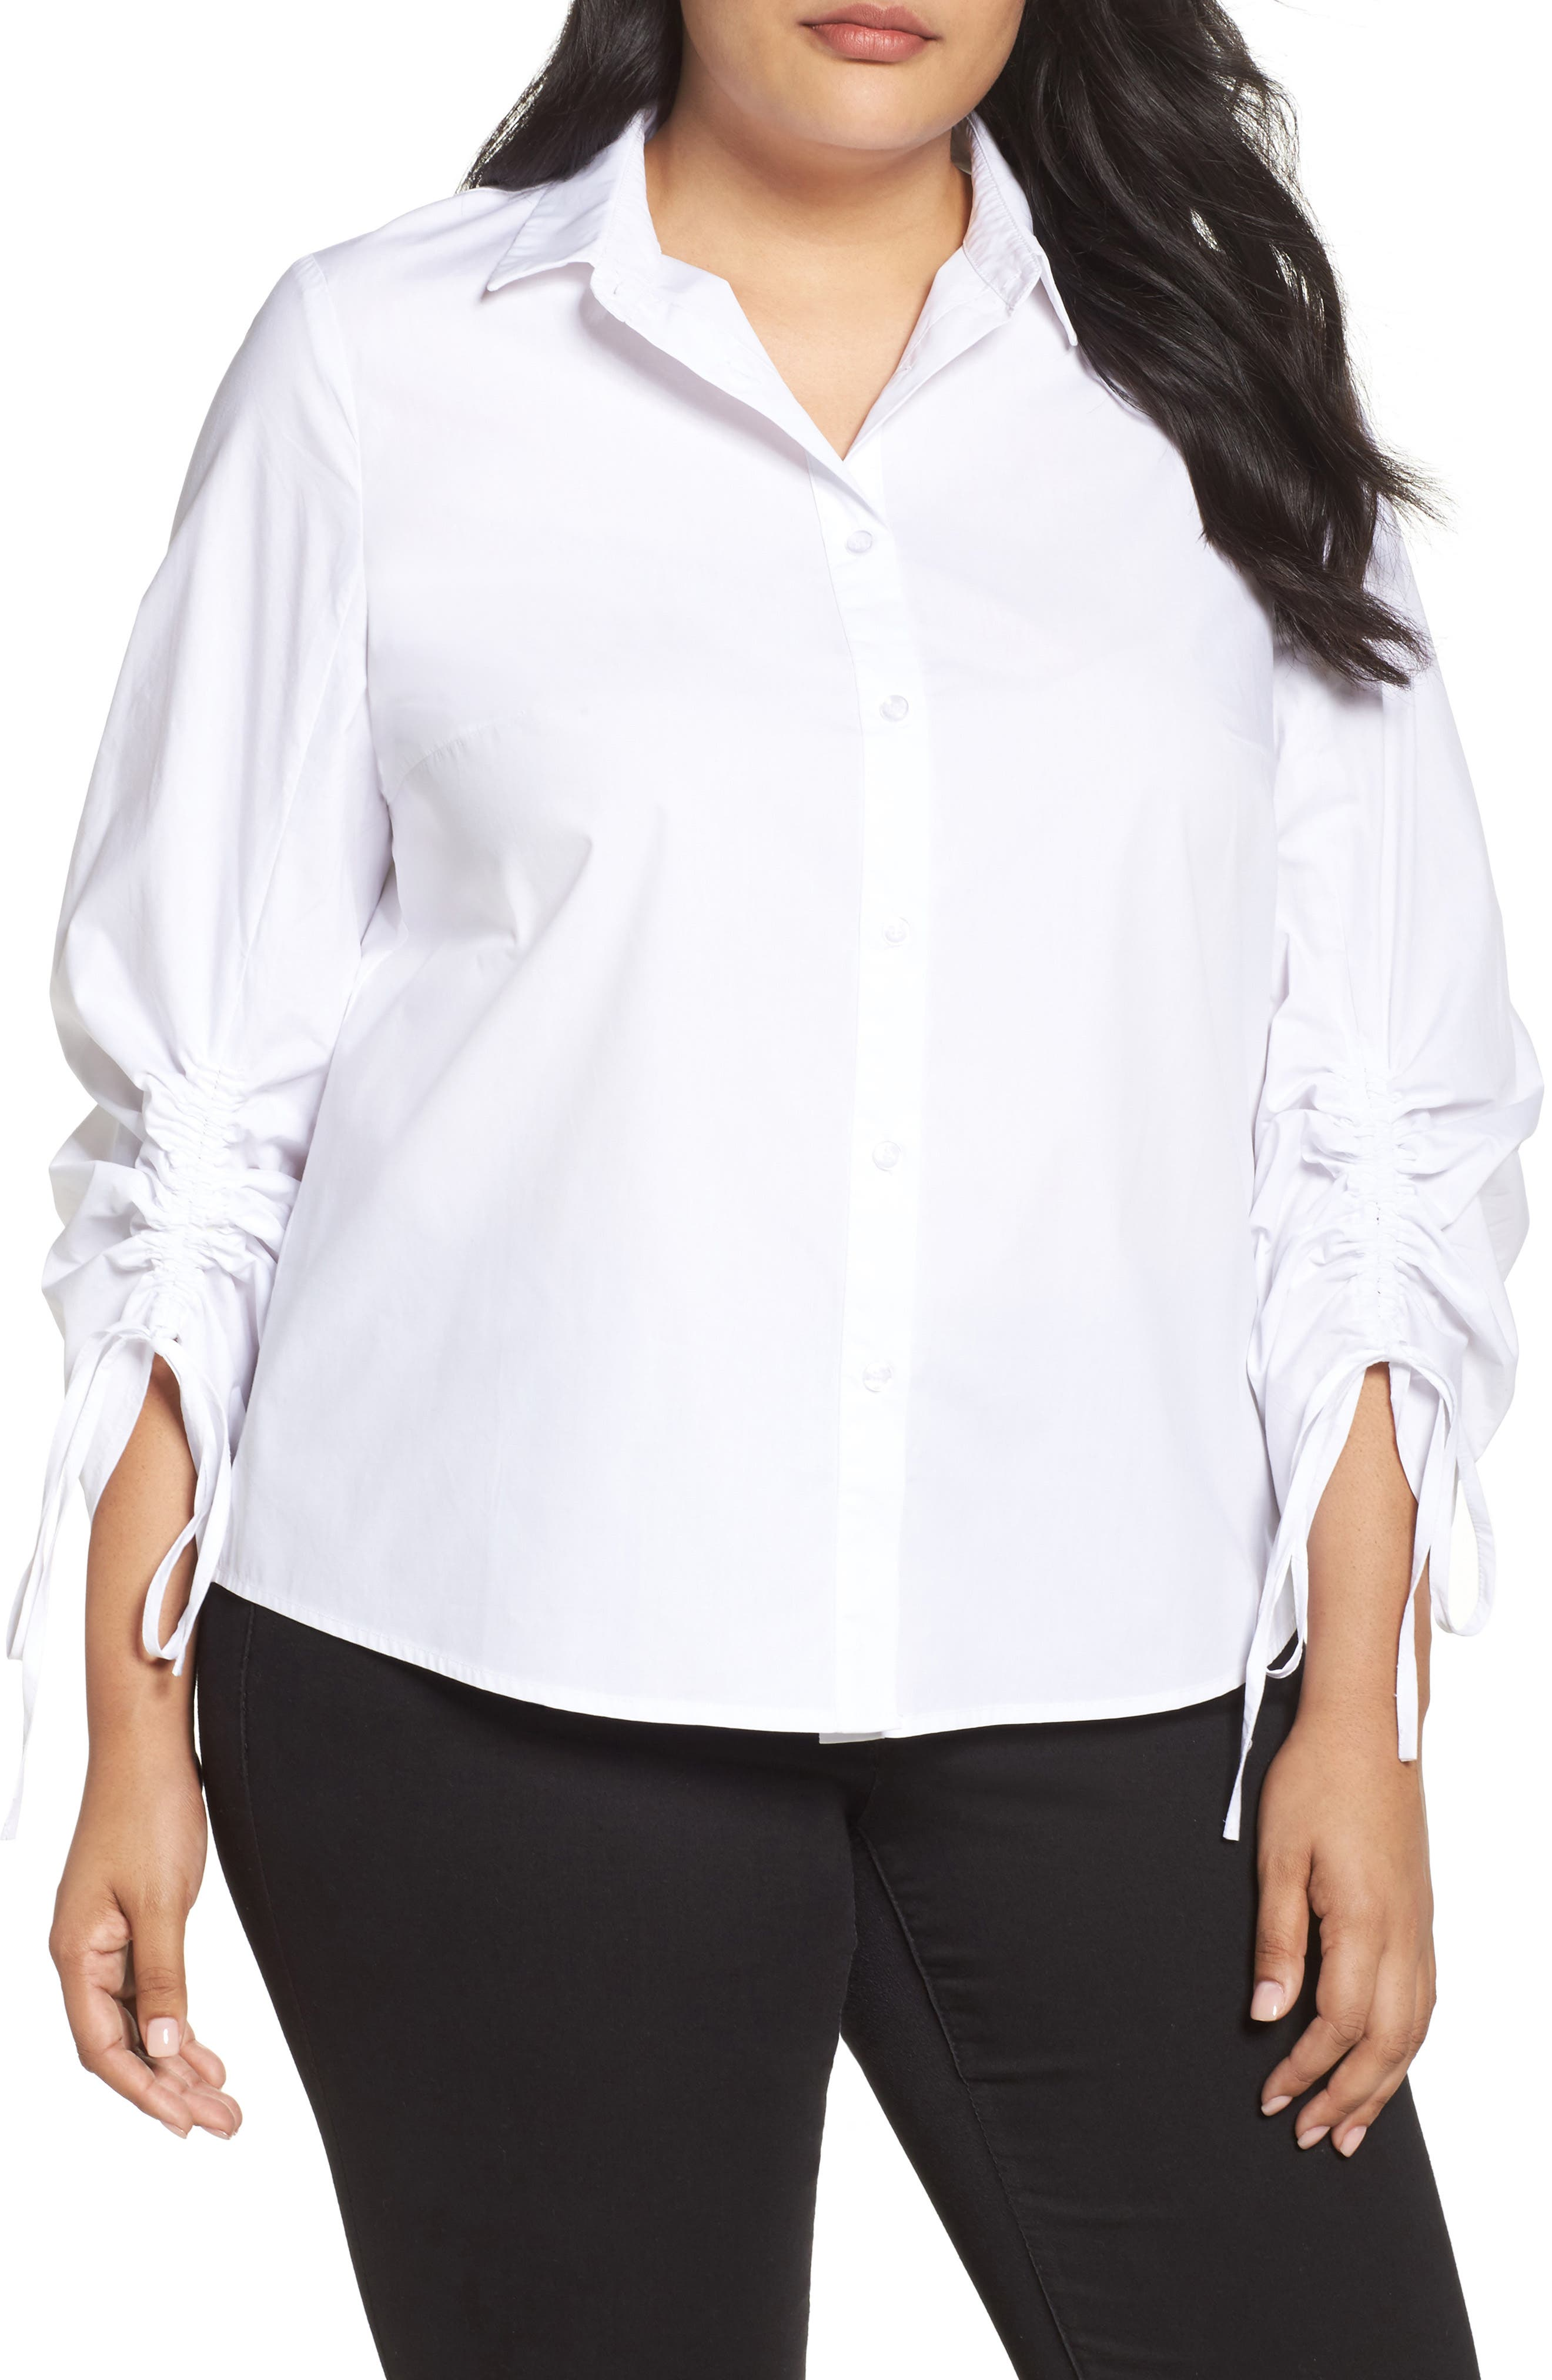 Main Image - LOST INK Ruched Sleeve Button-Up Shirt (Plus Size)